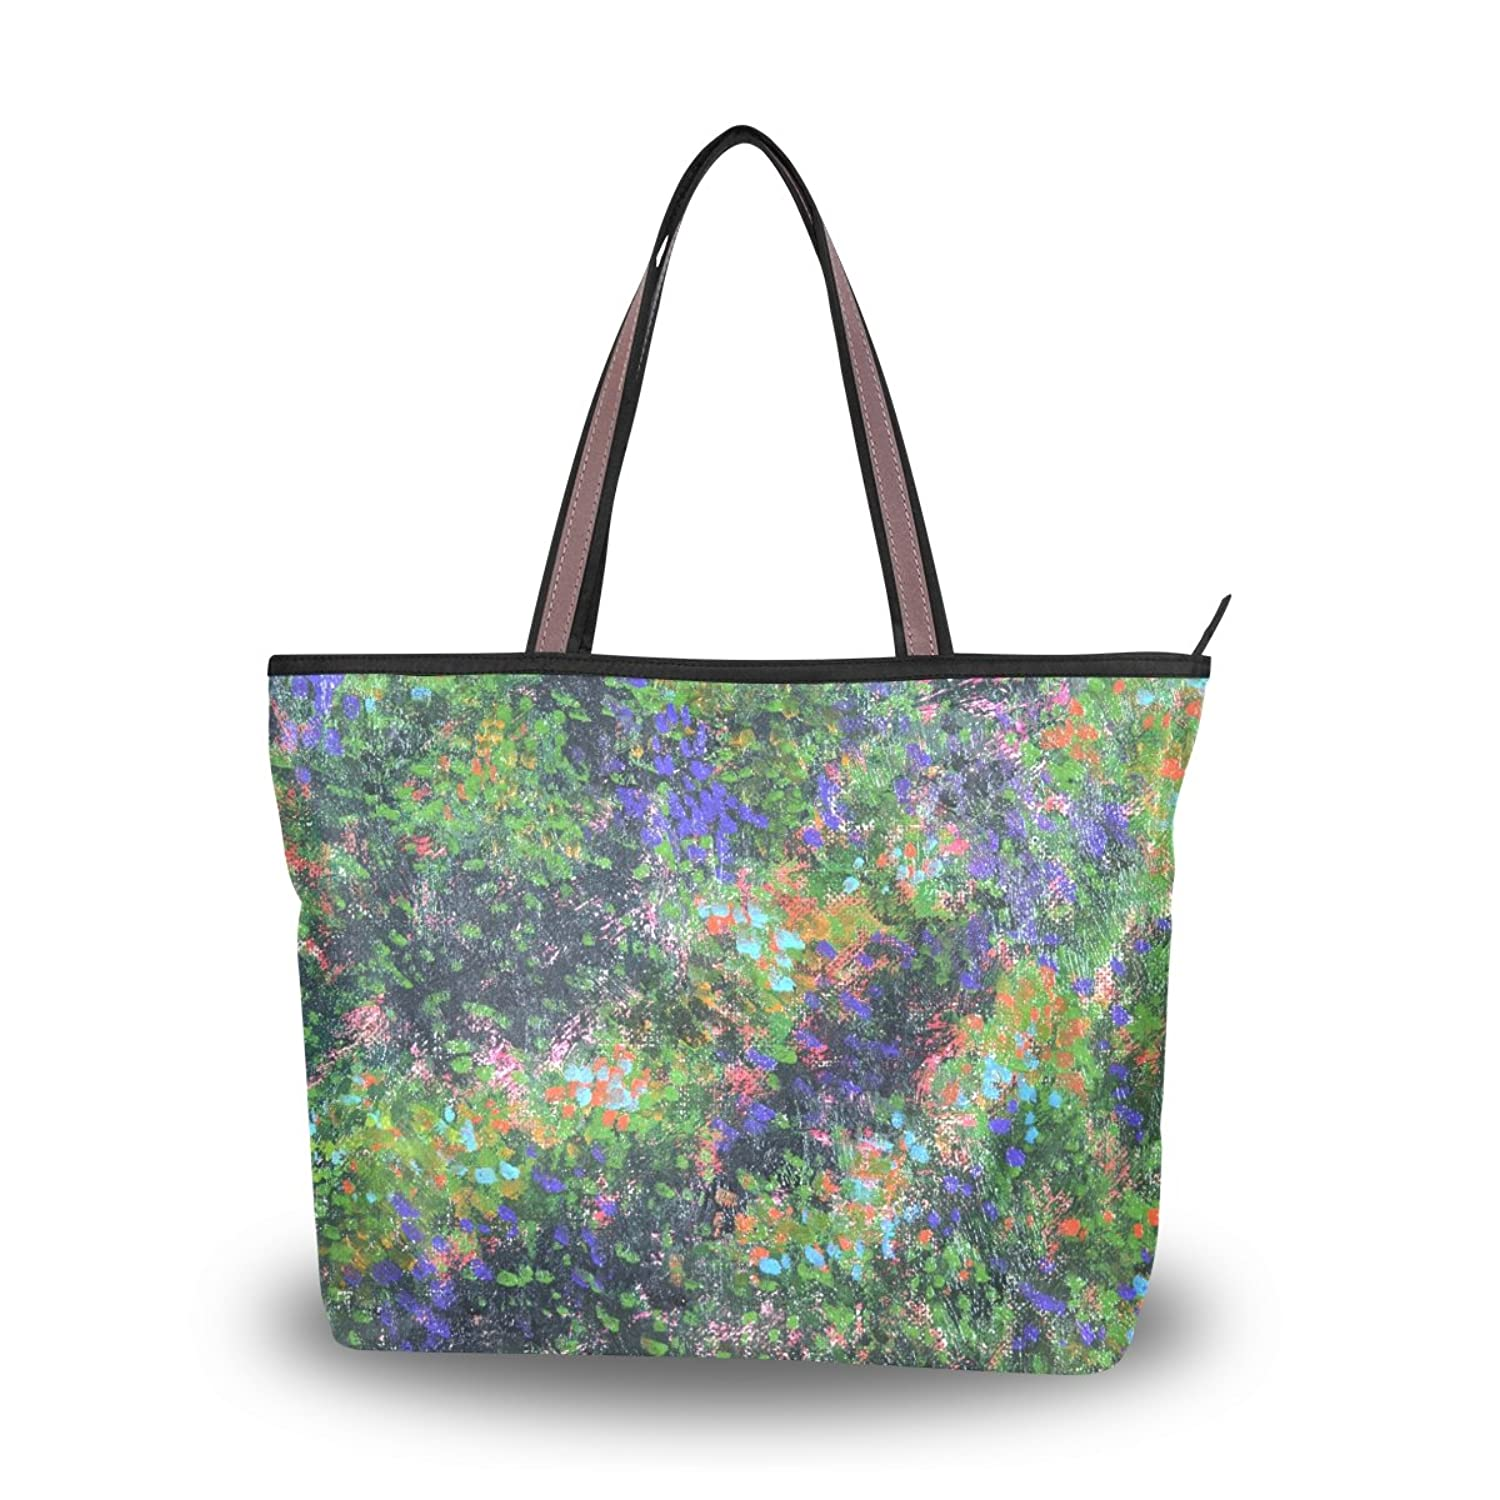 Leezone Microfiber Shoulder Handbags with Oil Paint Printing